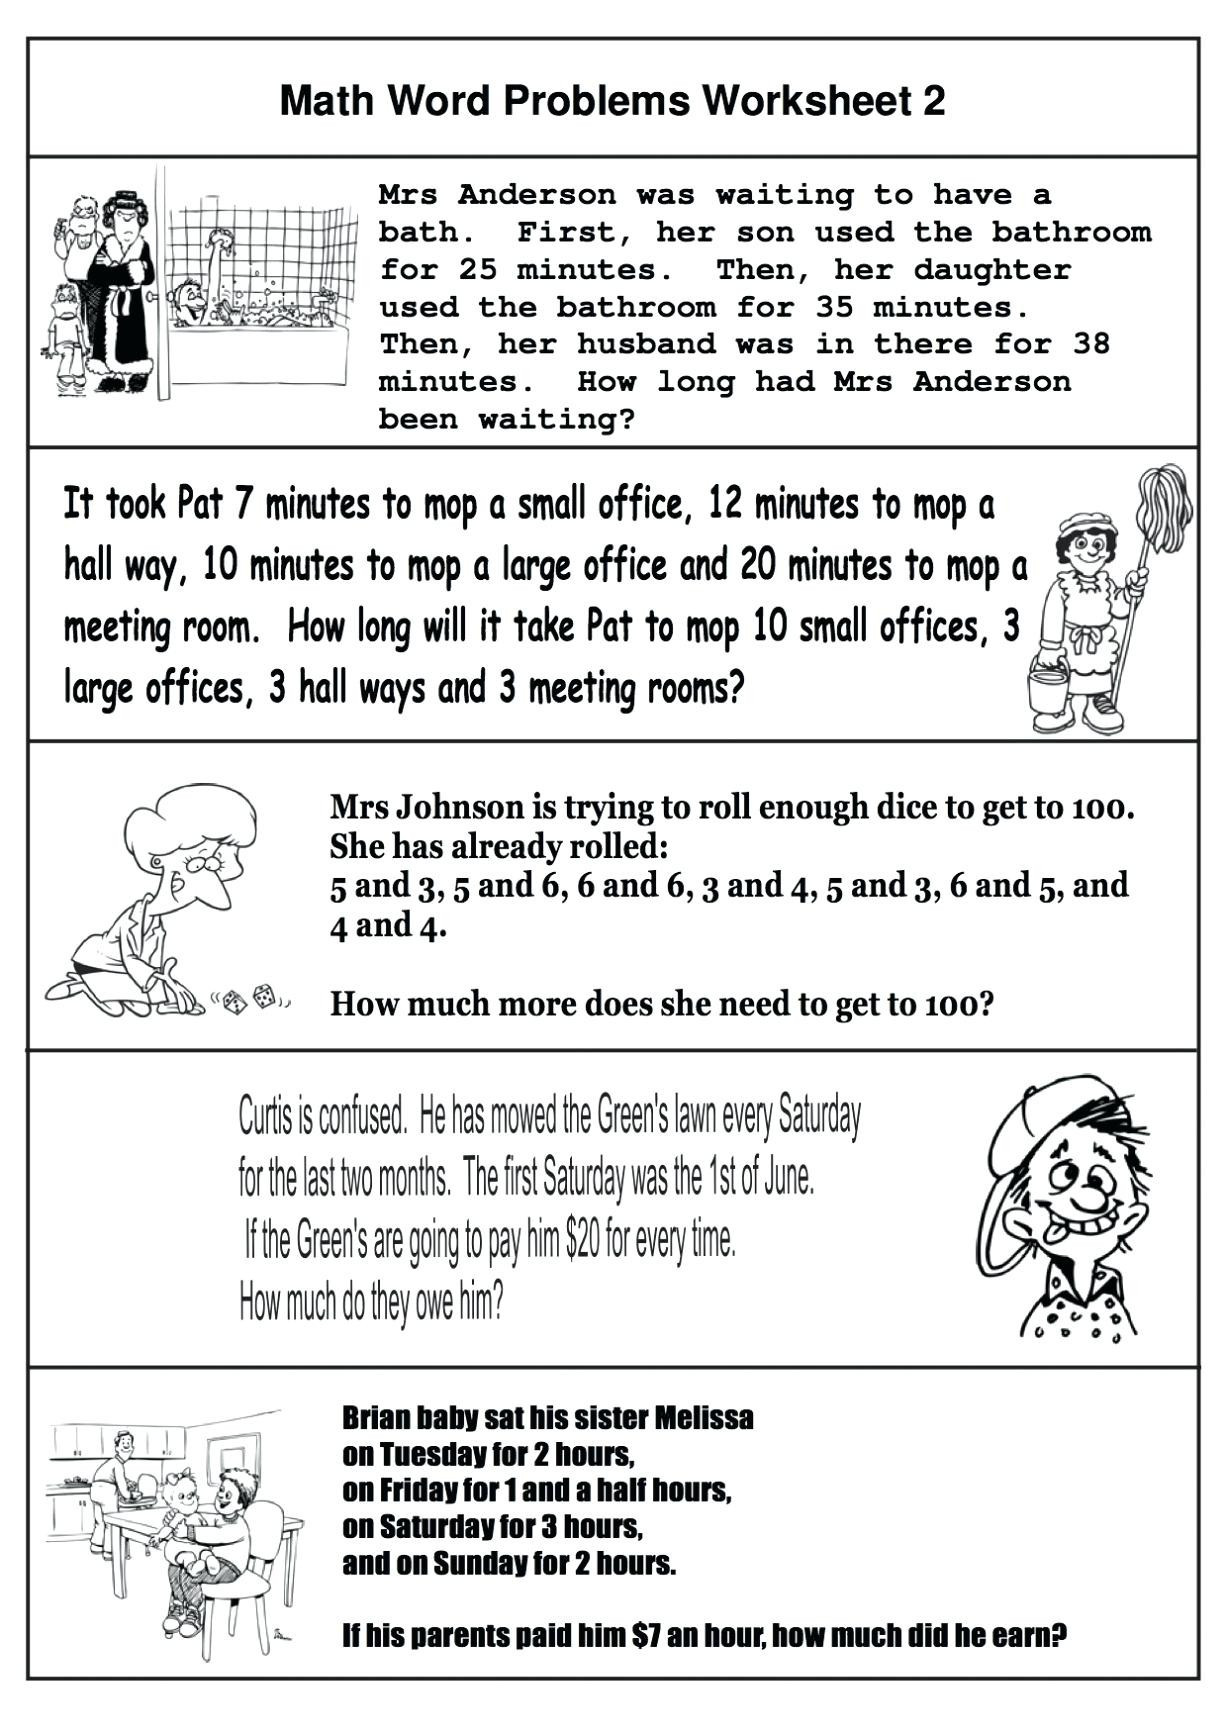 hight resolution of 5 Free Math Worksheets Fourth Grade 4 Addition Adding 3 Digit and 1 Digit  Numbers - AMP